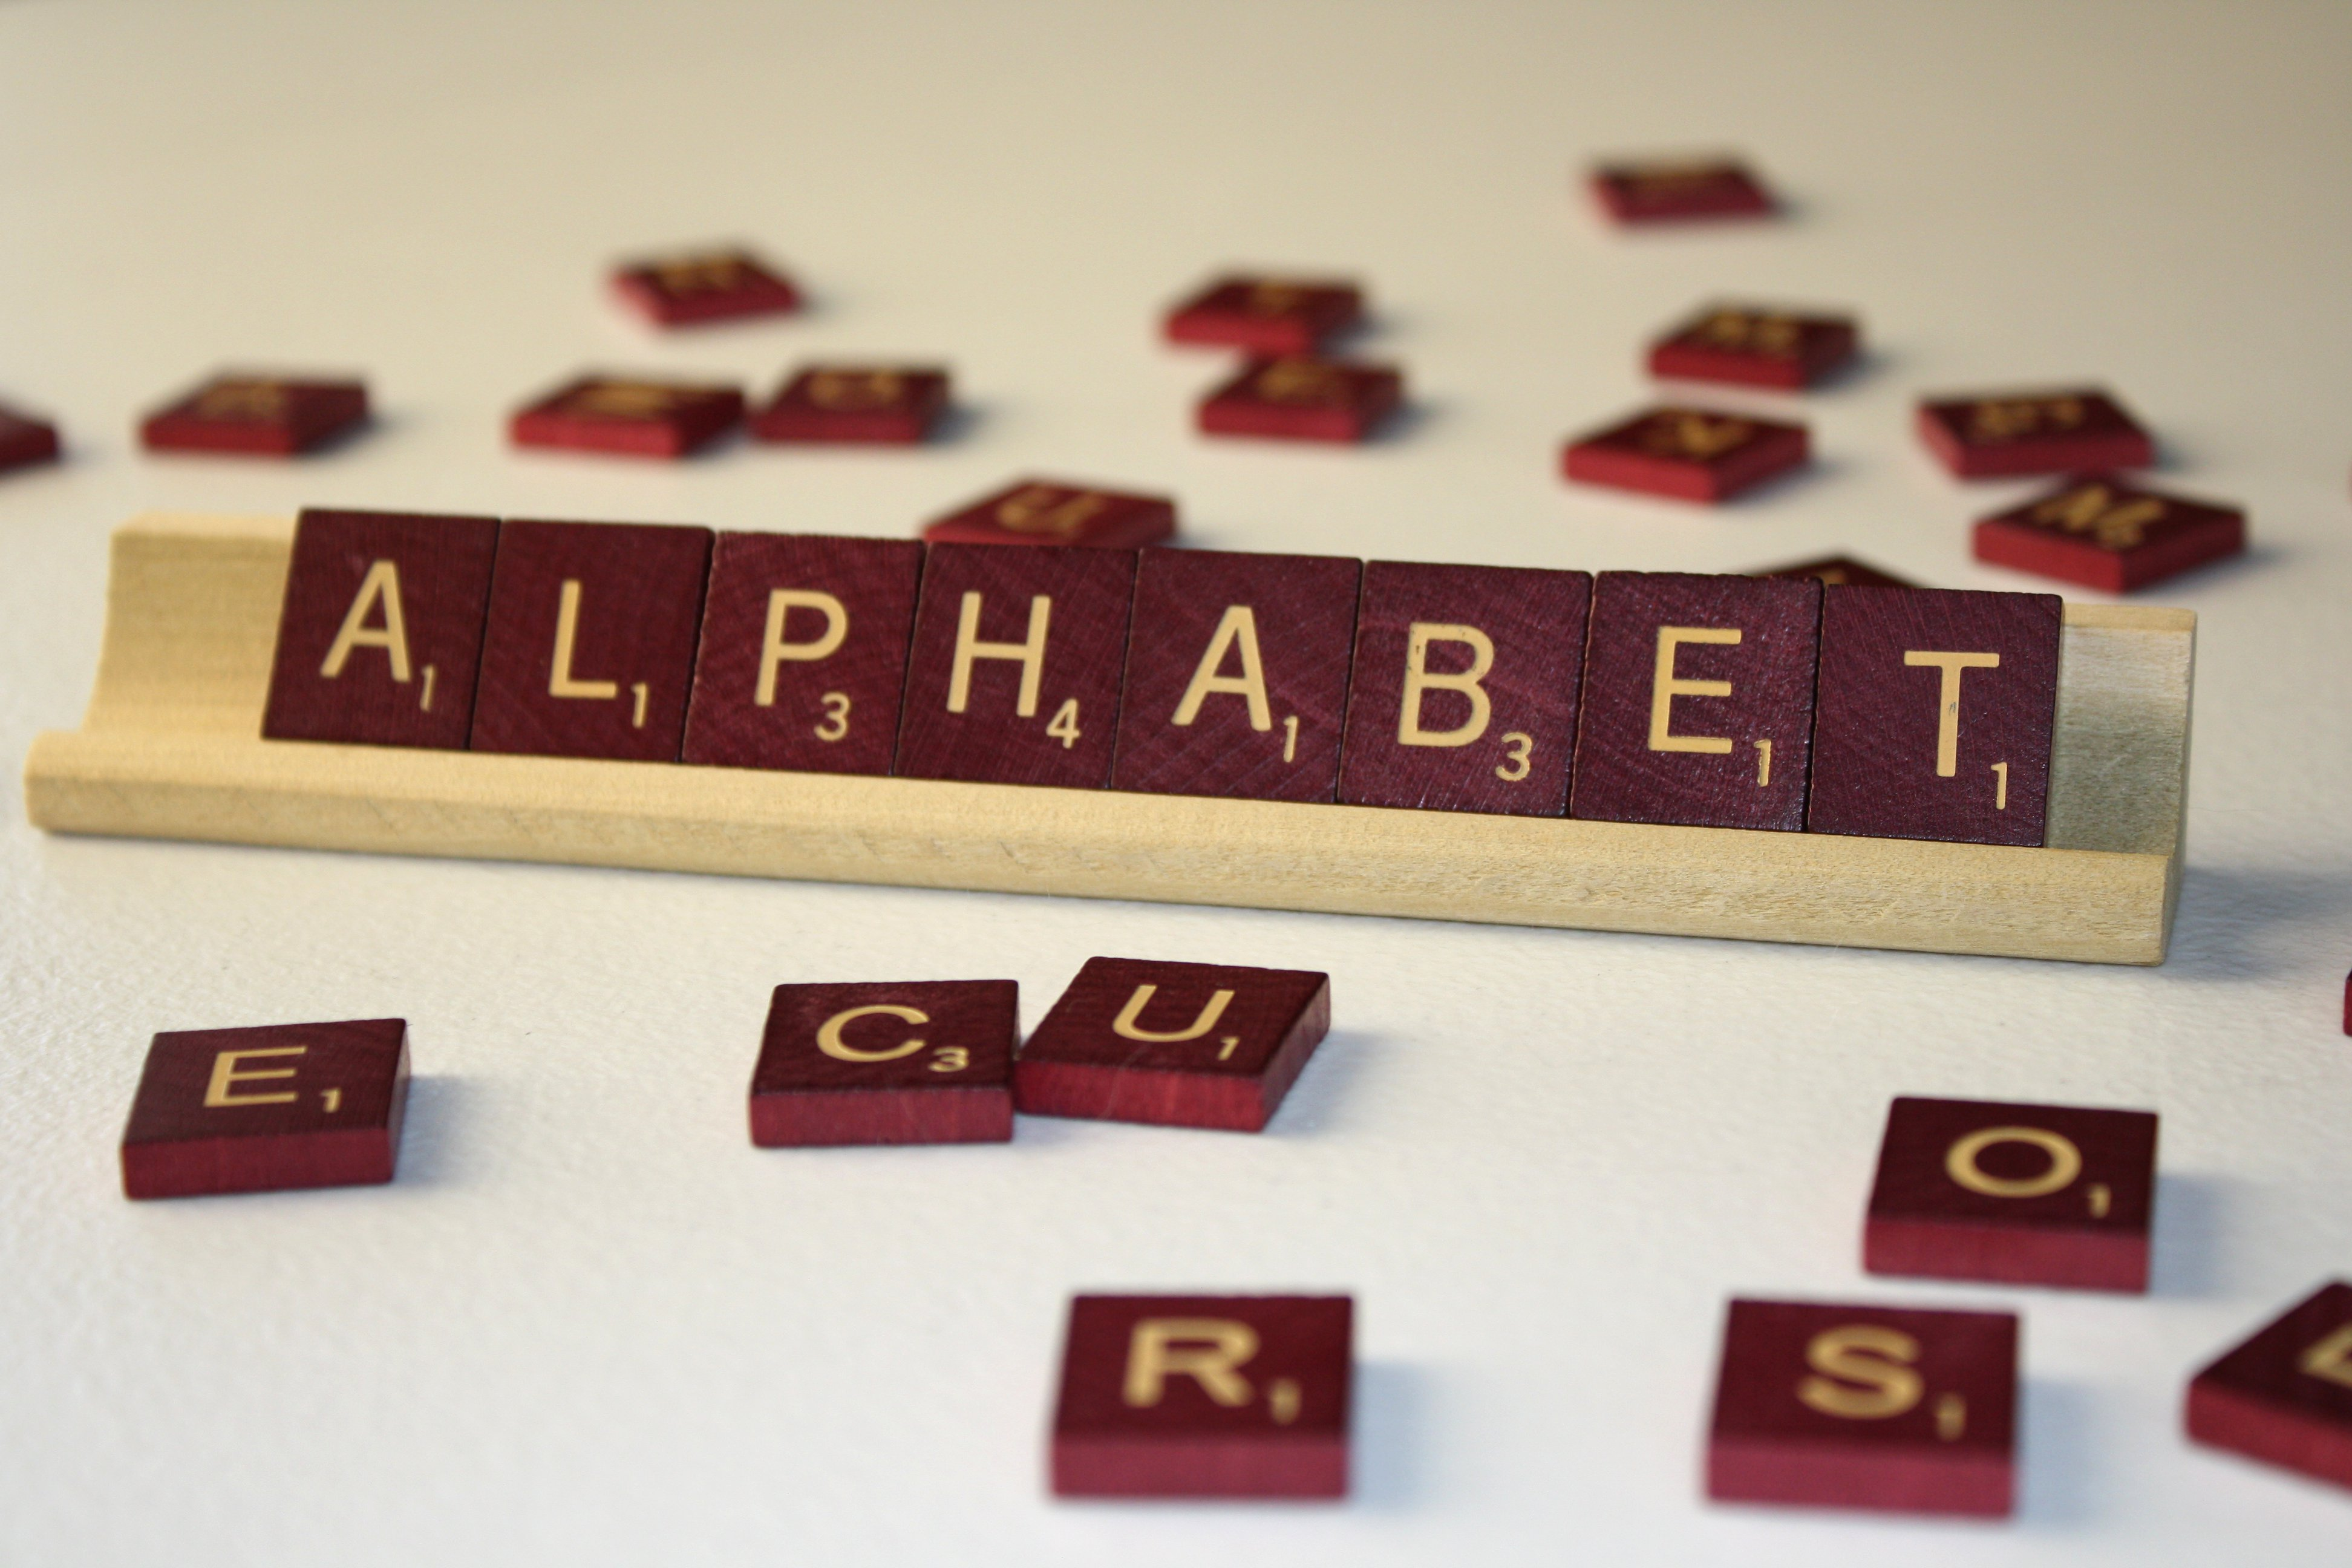 Alphabet Adjusts To Slower Growth, Still A Great Company